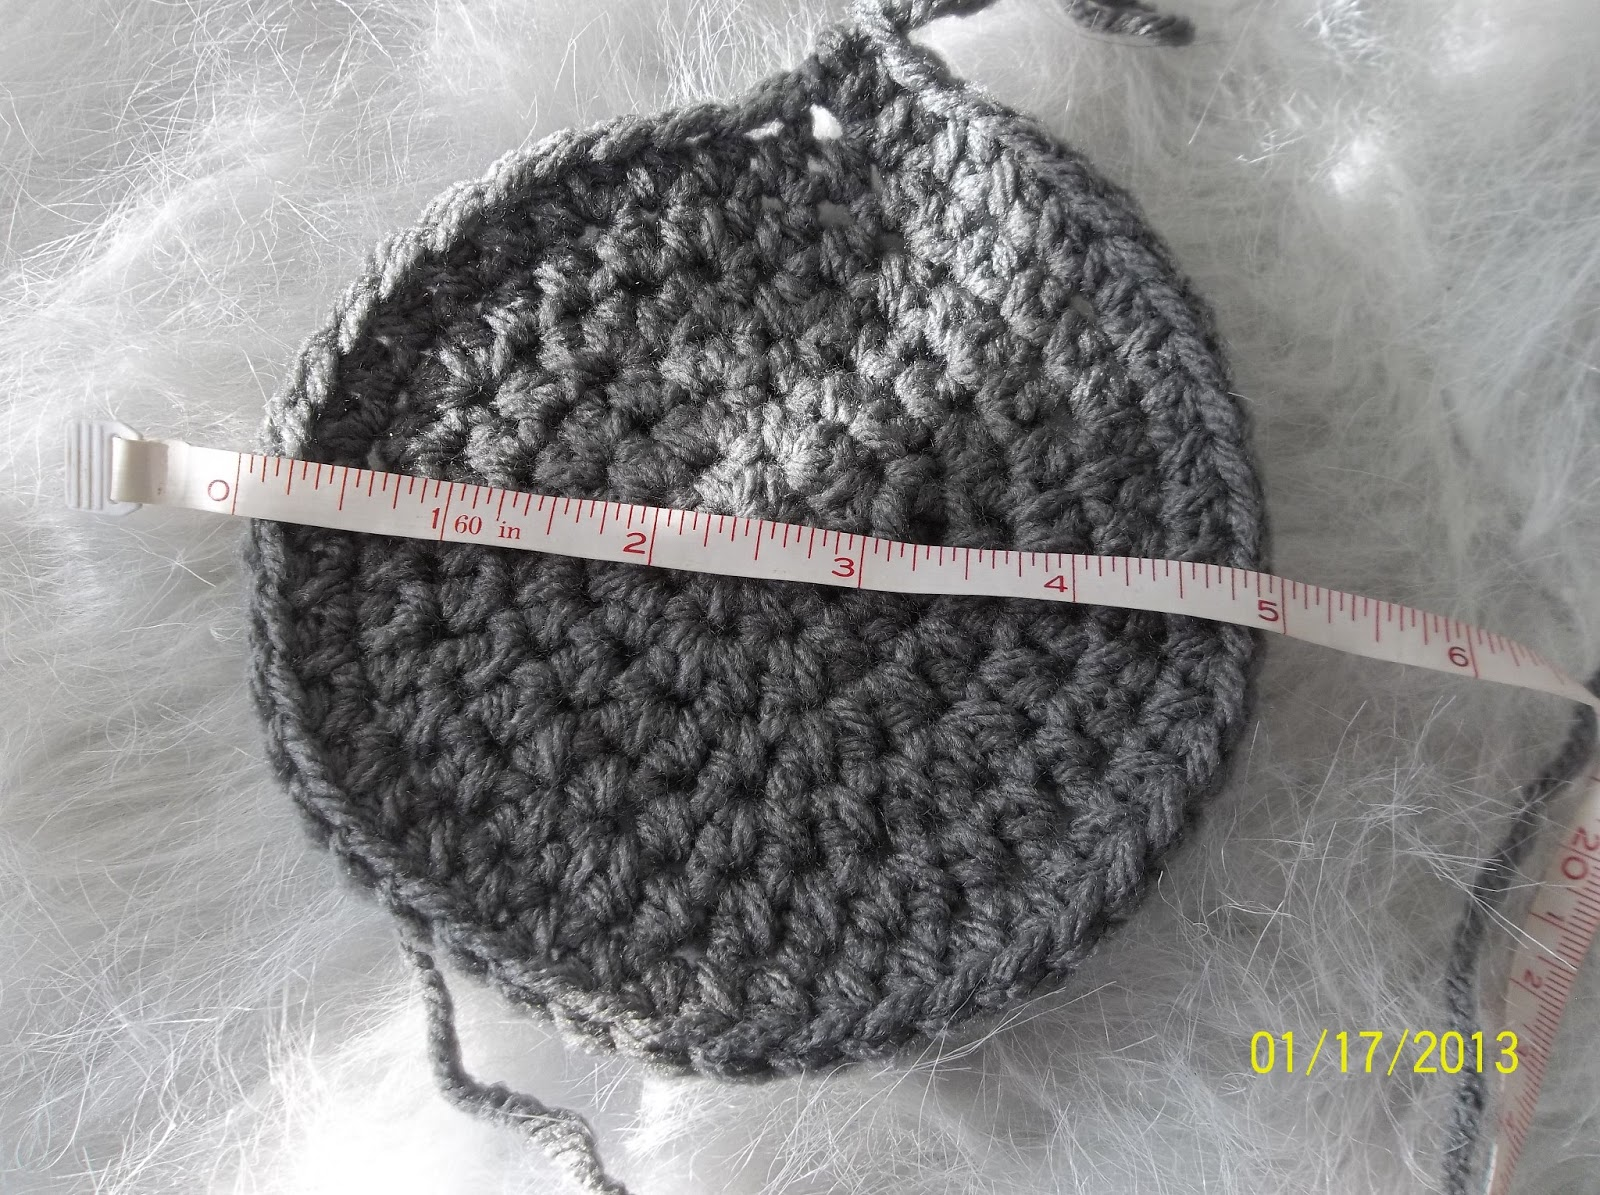 Creating beautiful things in life how to properly size crochet hats how to properly size crochet hats chart for correct sizing including magic circle sizes ccuart Gallery